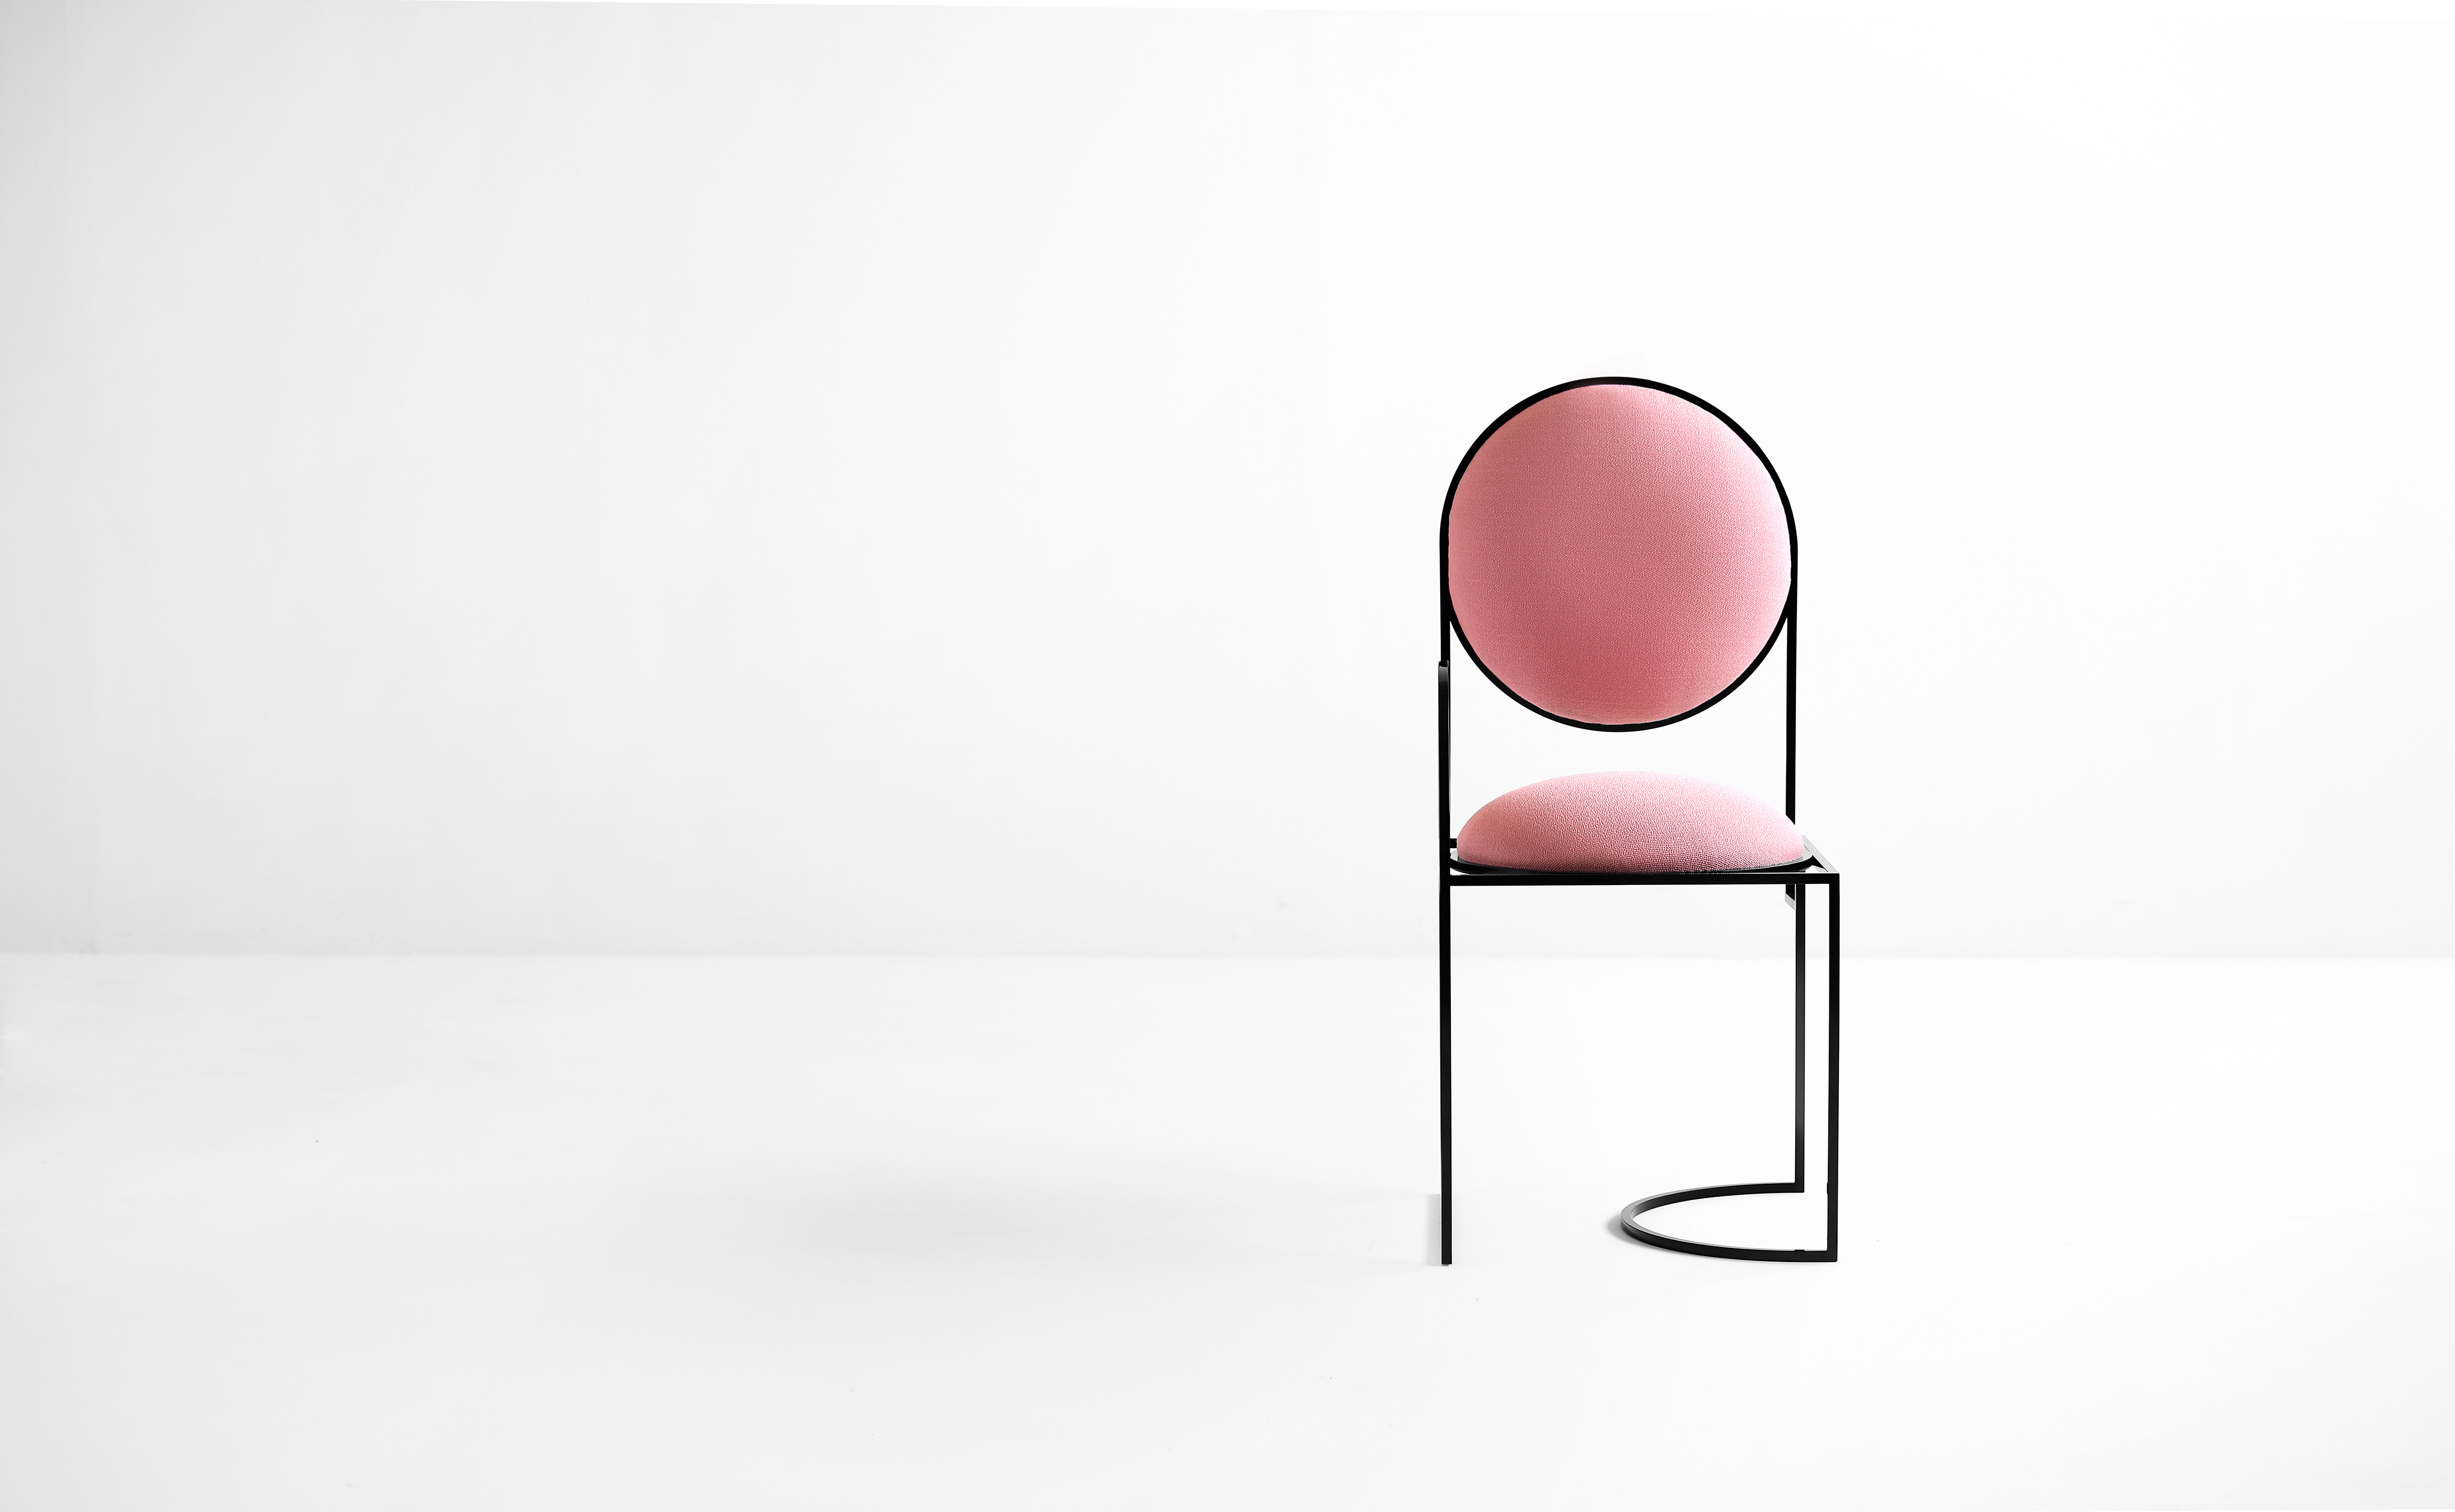 Solar Chair - The Solar Chair has an asymmetric frame and it's reflecting circles suggest the rising and setting of the sun. It is constructed from playful lines that incorporates circles, half circles and squares. 